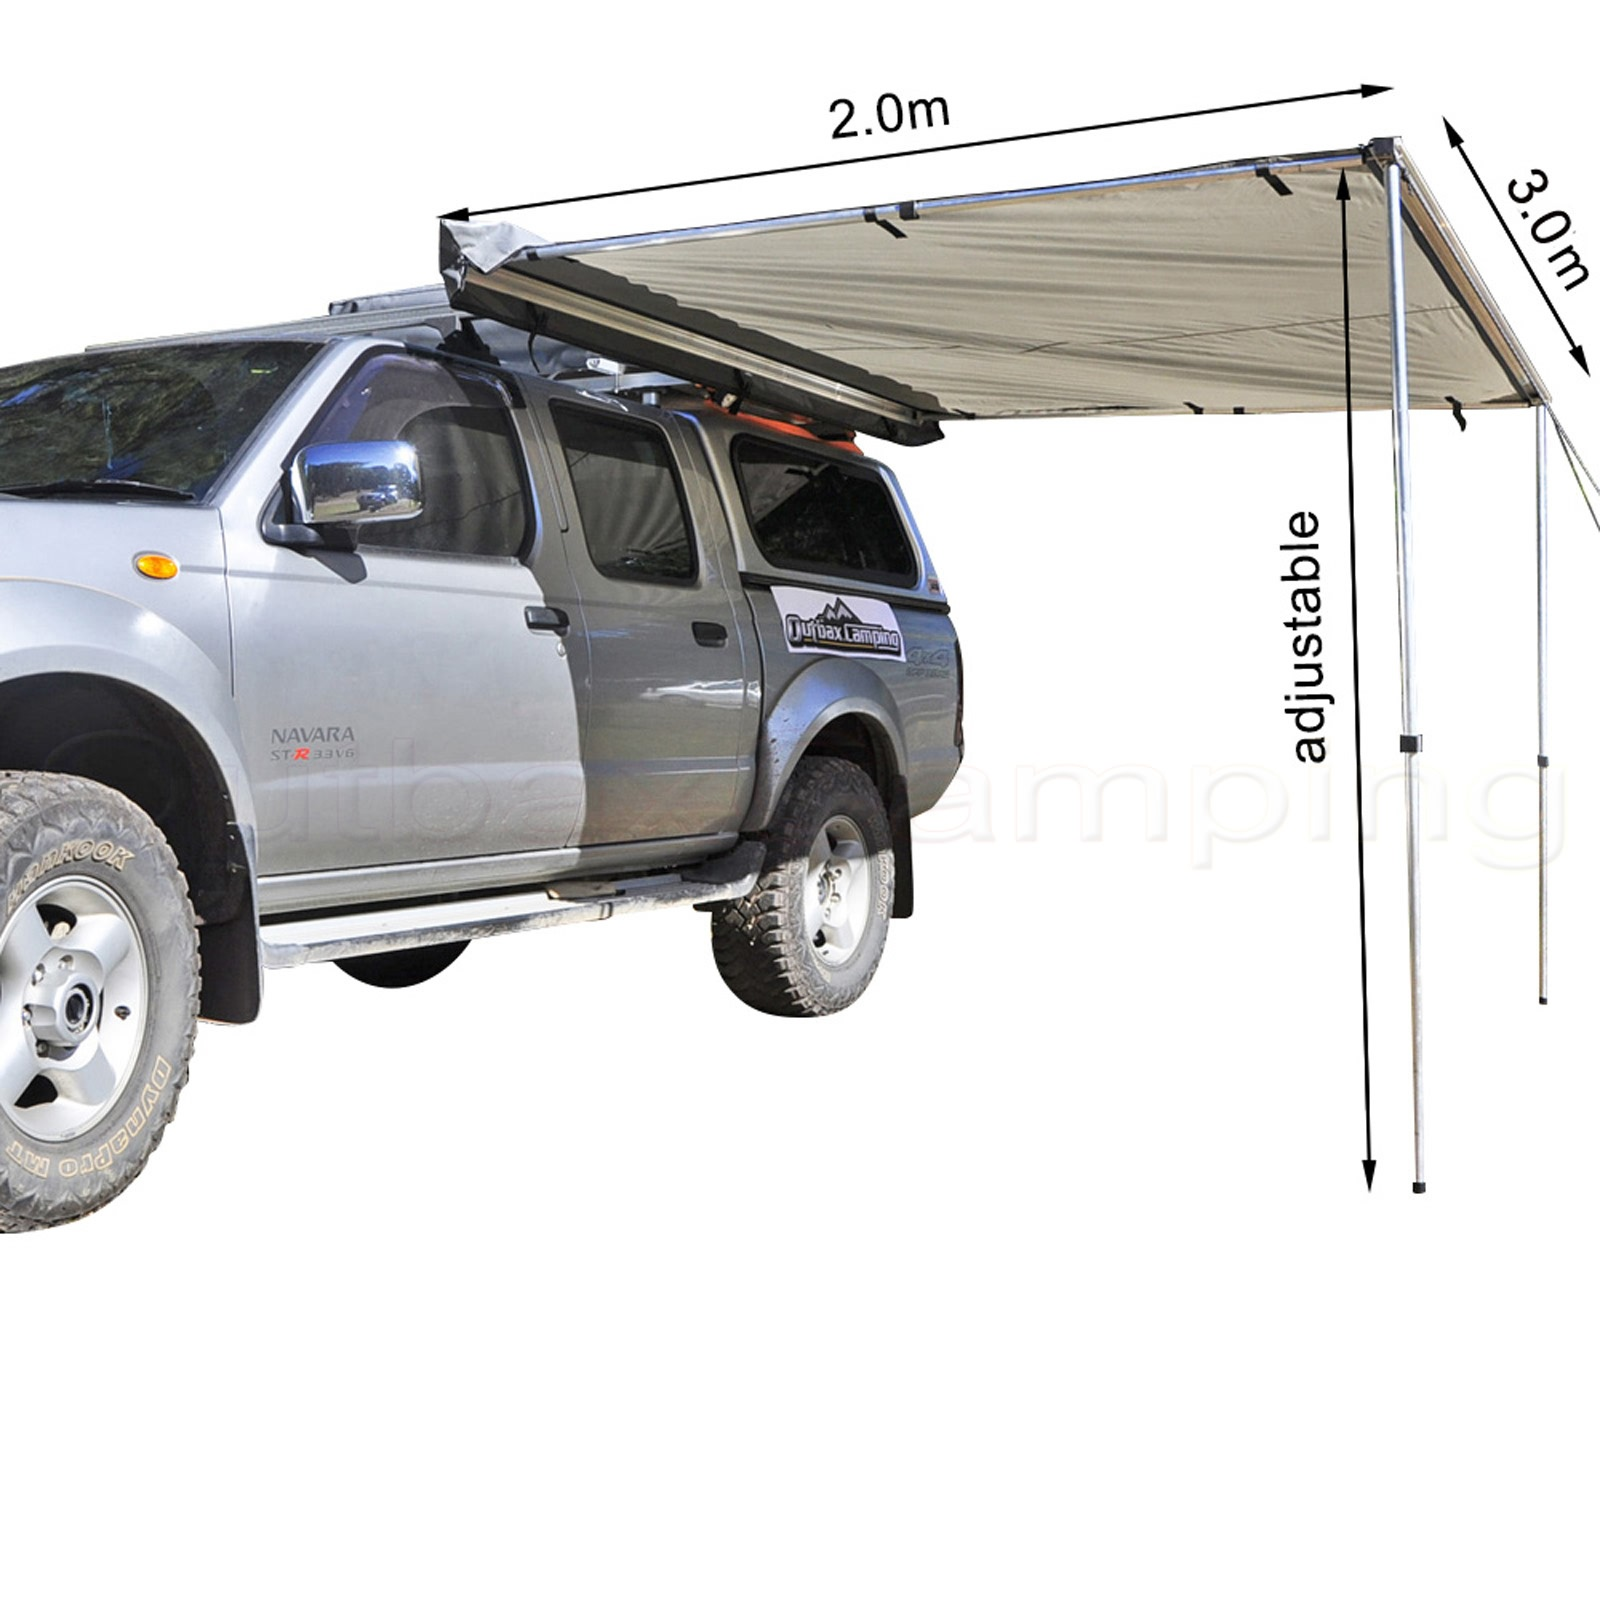 3M AWNING ROOF TOP TENT CAMPER TRAILER 4WD 4X4 SIDE CAMPING CAR RACK Pull Out